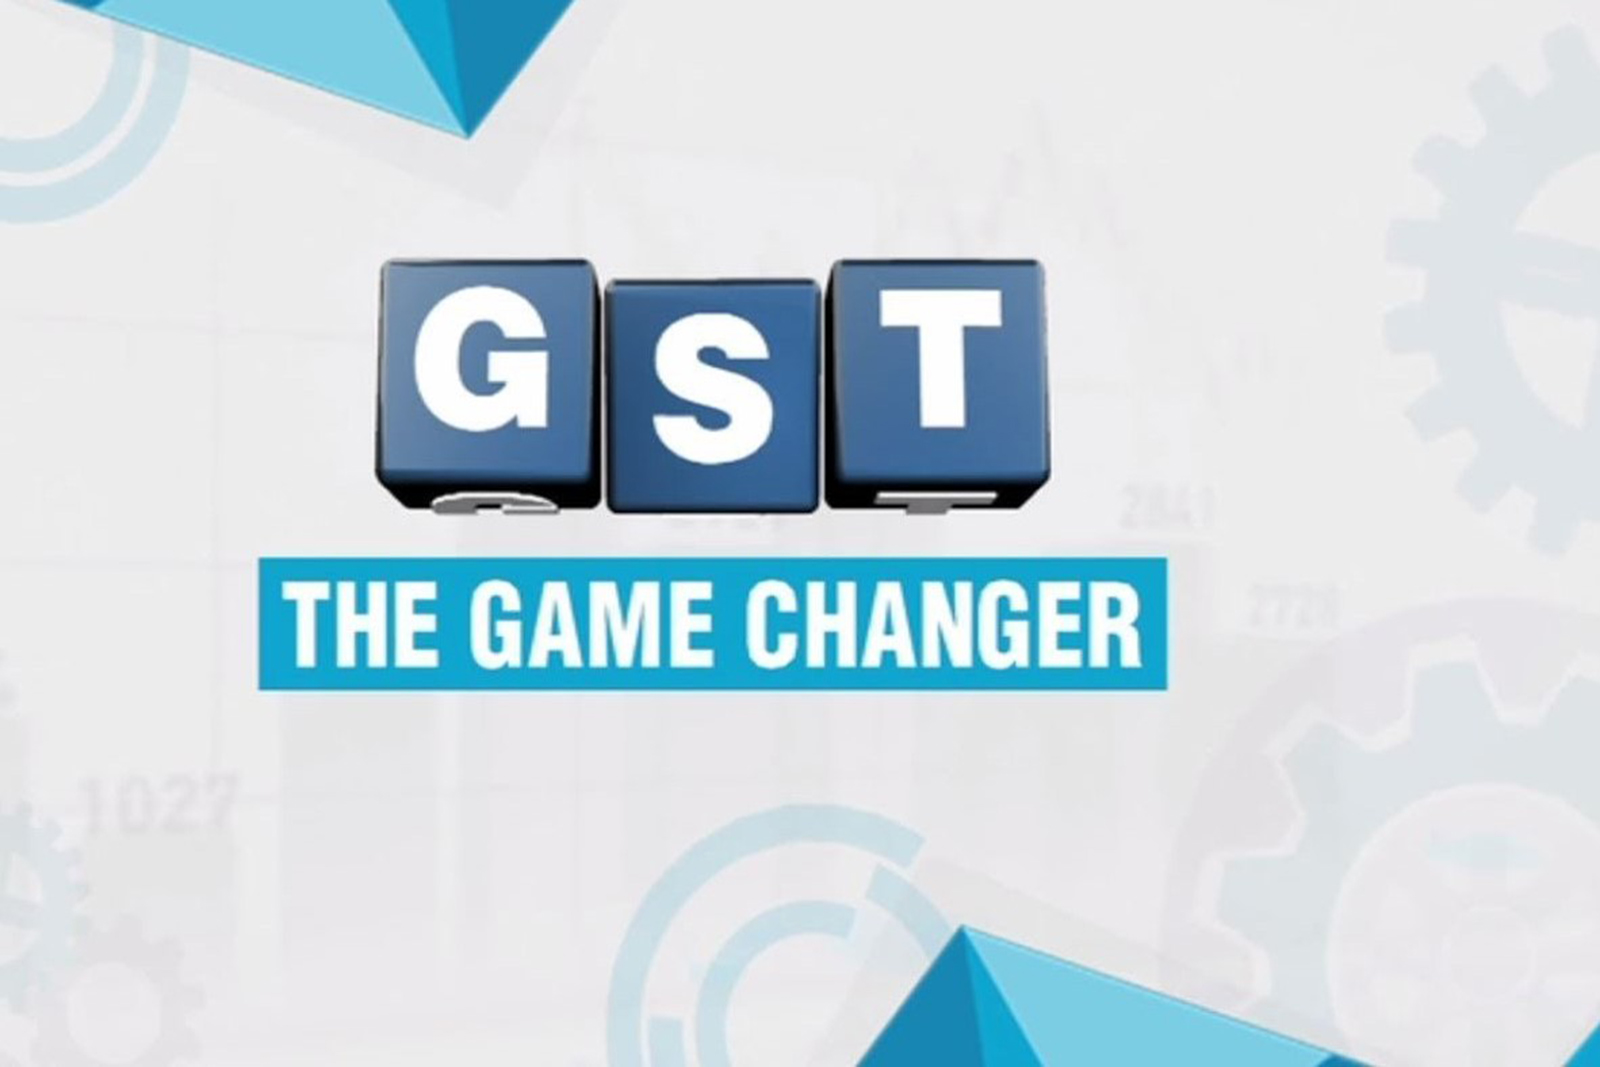 Remove flaws to make GST a gamechanger